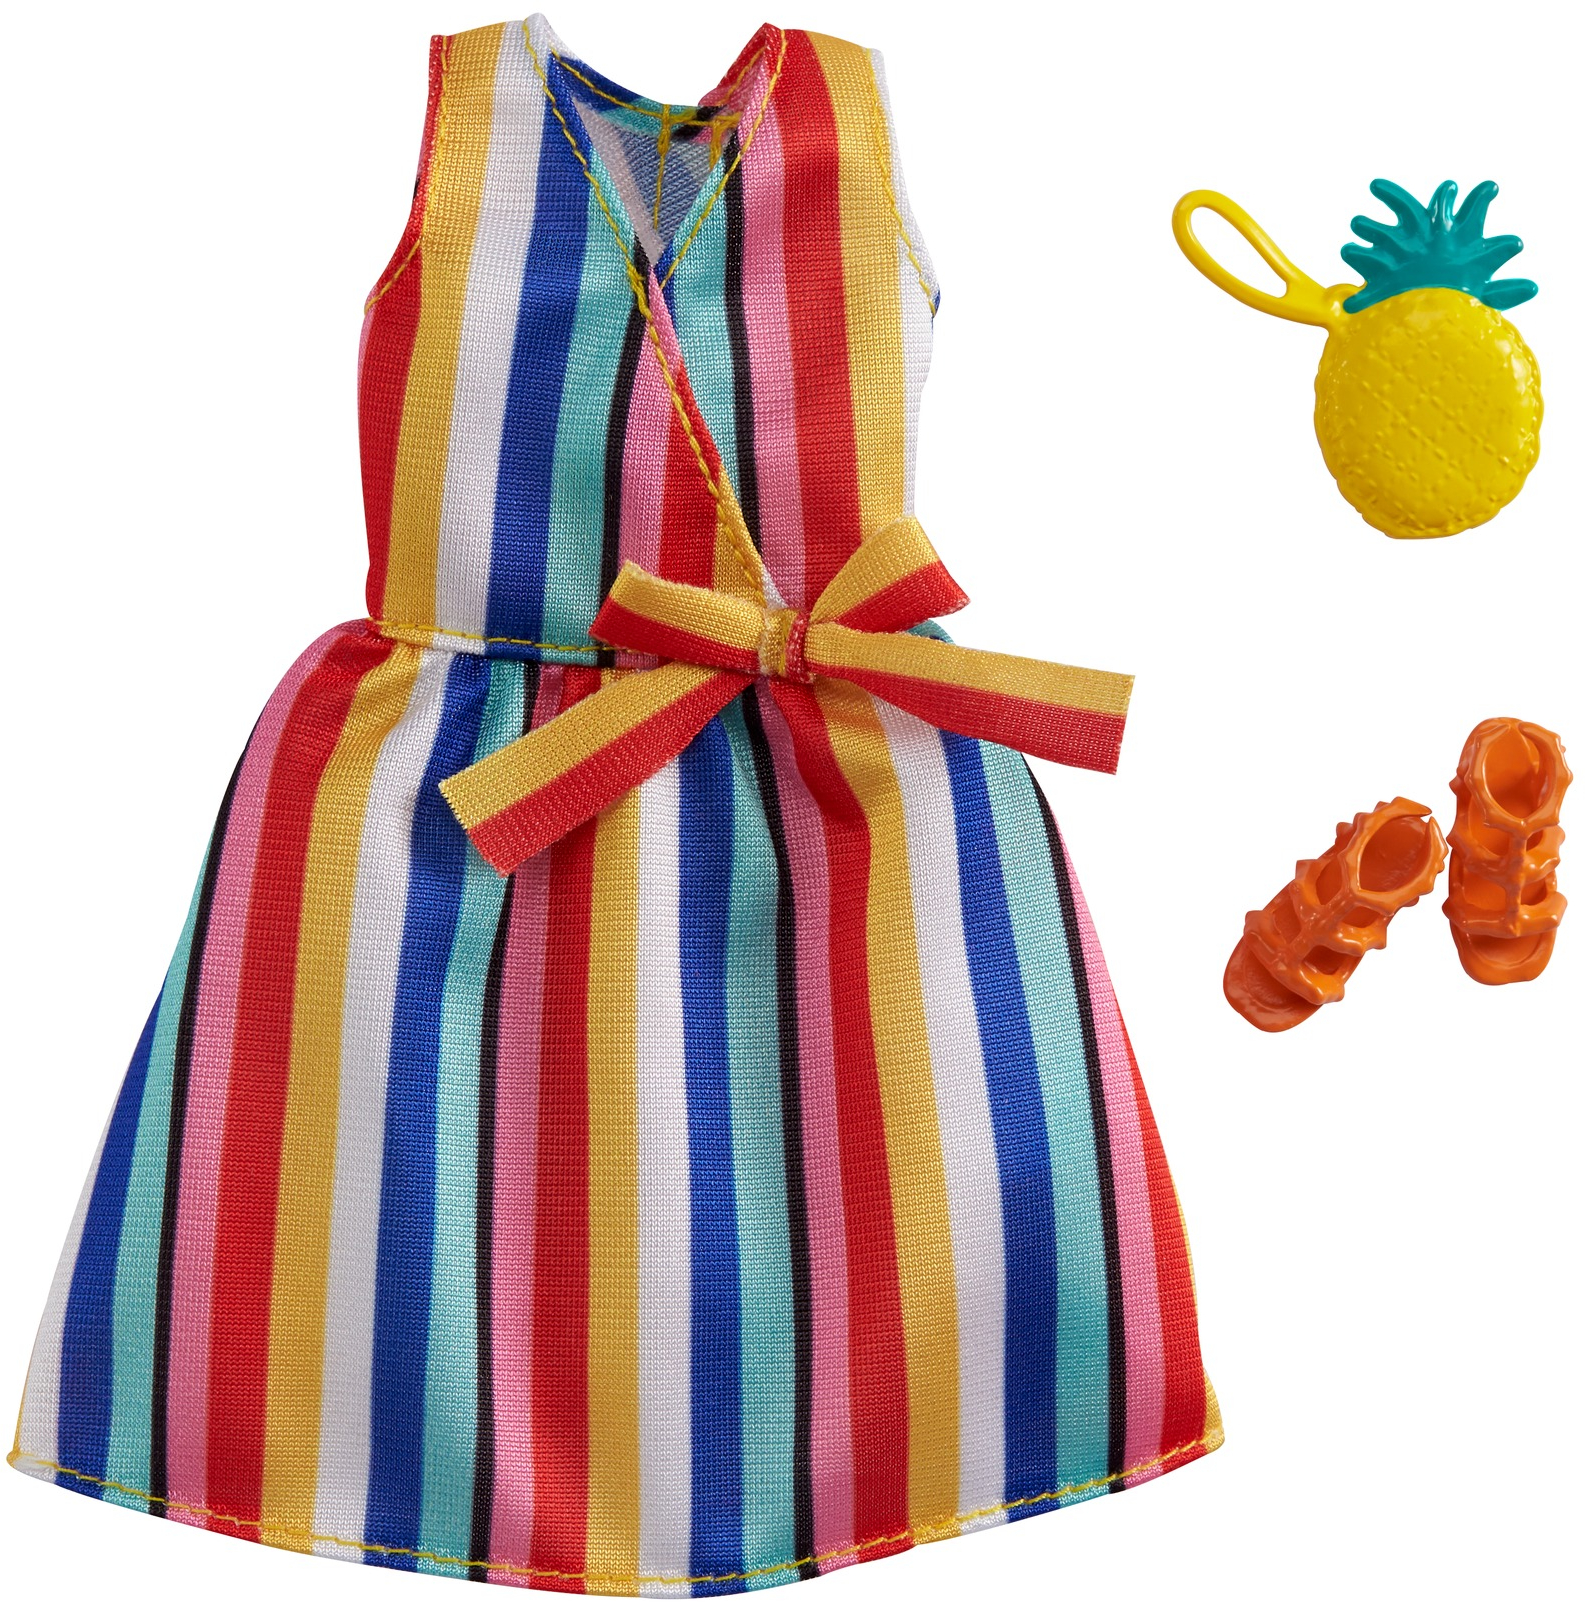 barbie clothes Tube top with maxi skirt doll outfit fashion doll clothes spring outfit set of 2